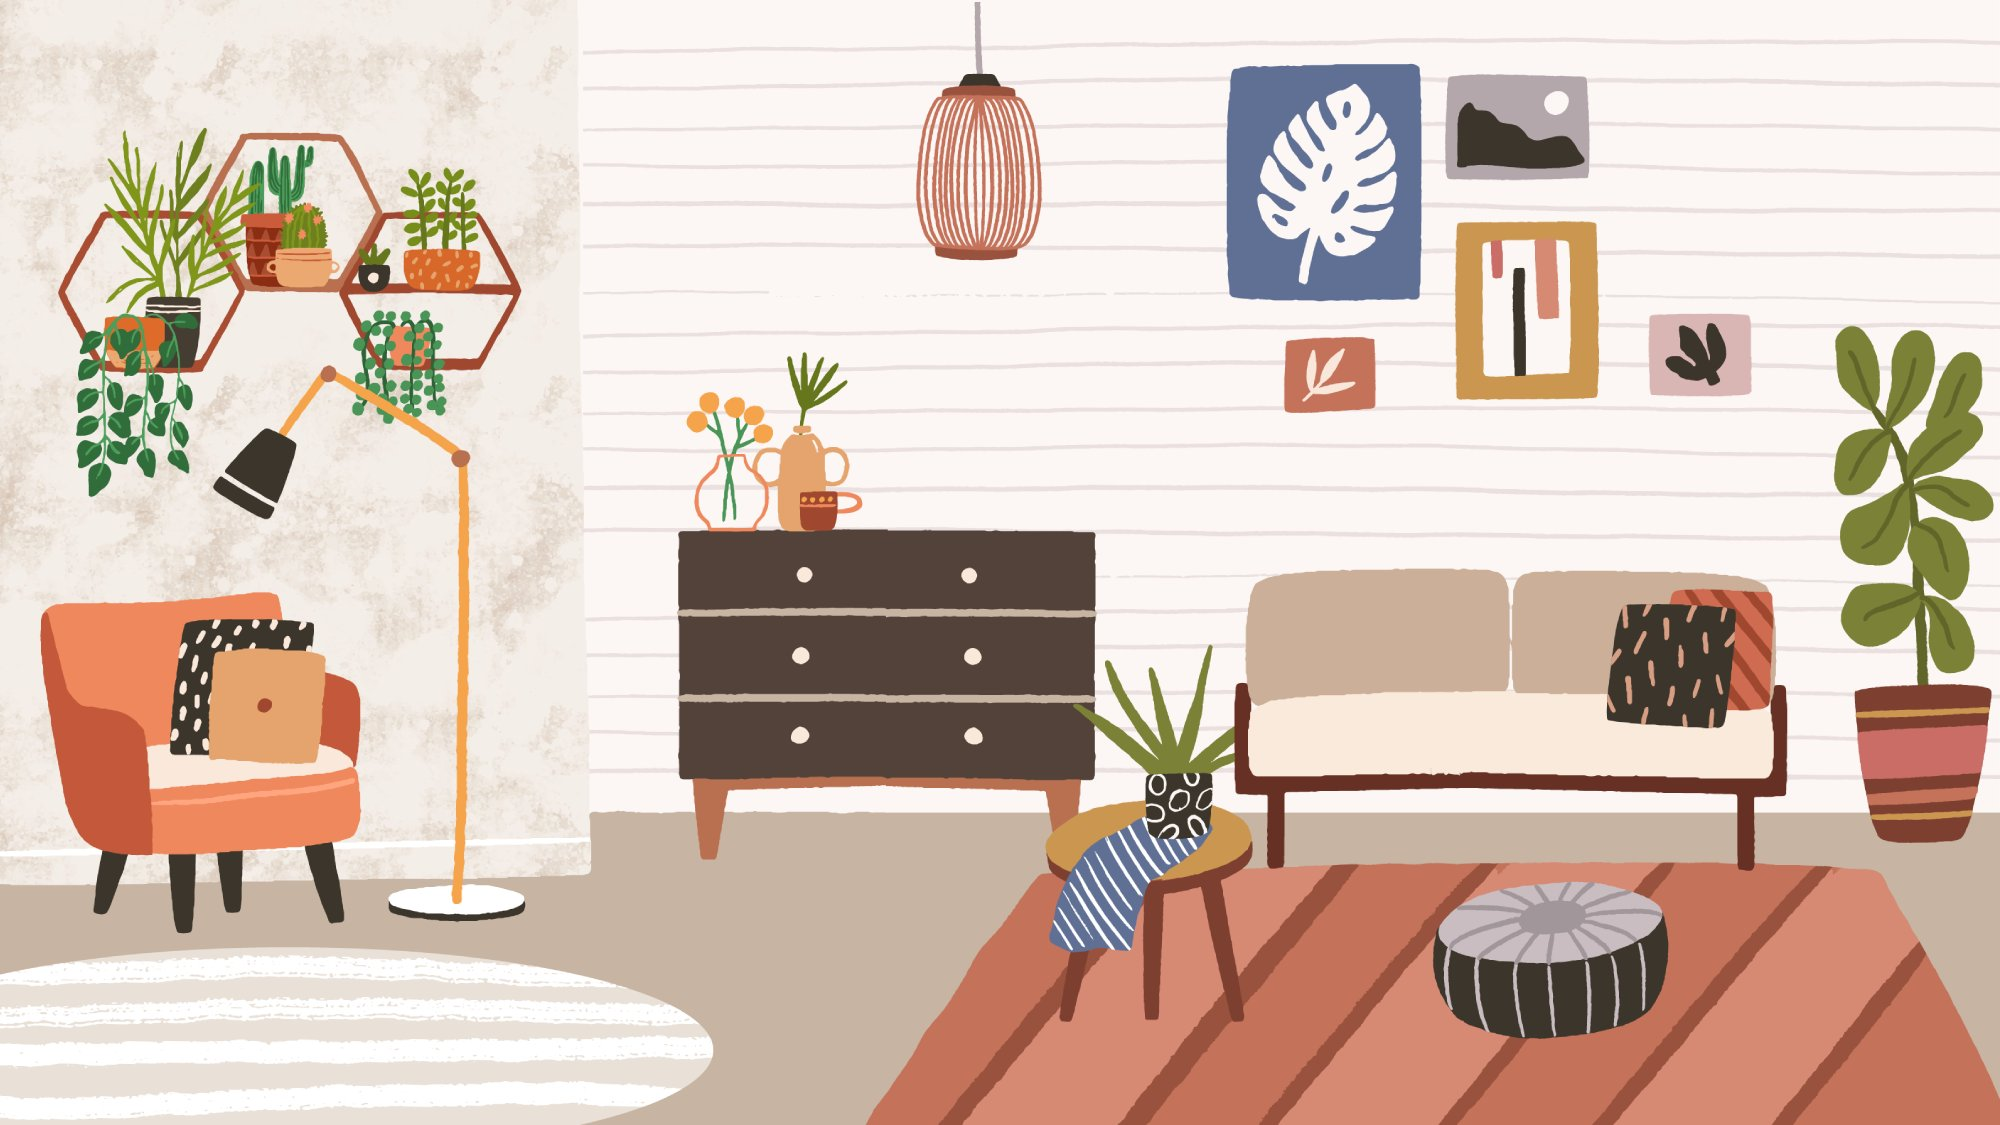 illustration of a living room